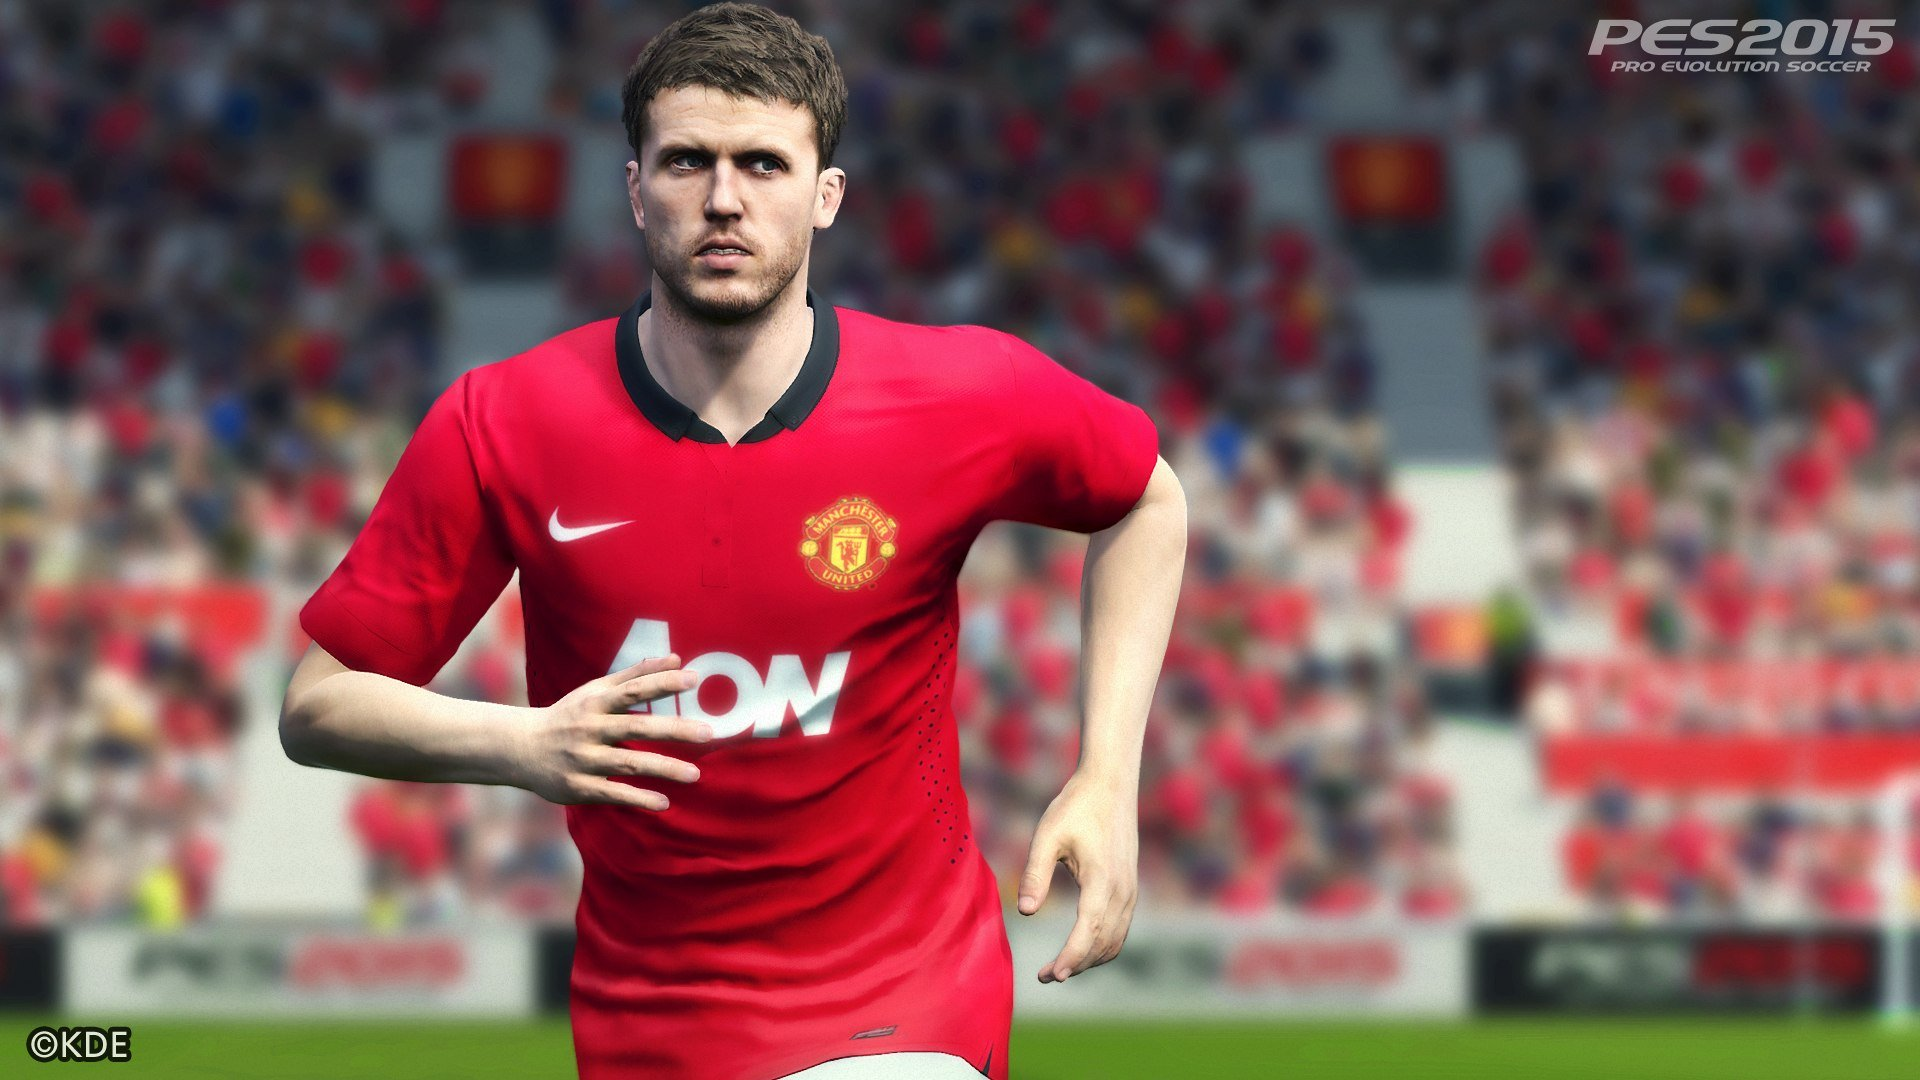 PES 2015 – PlayStation 4